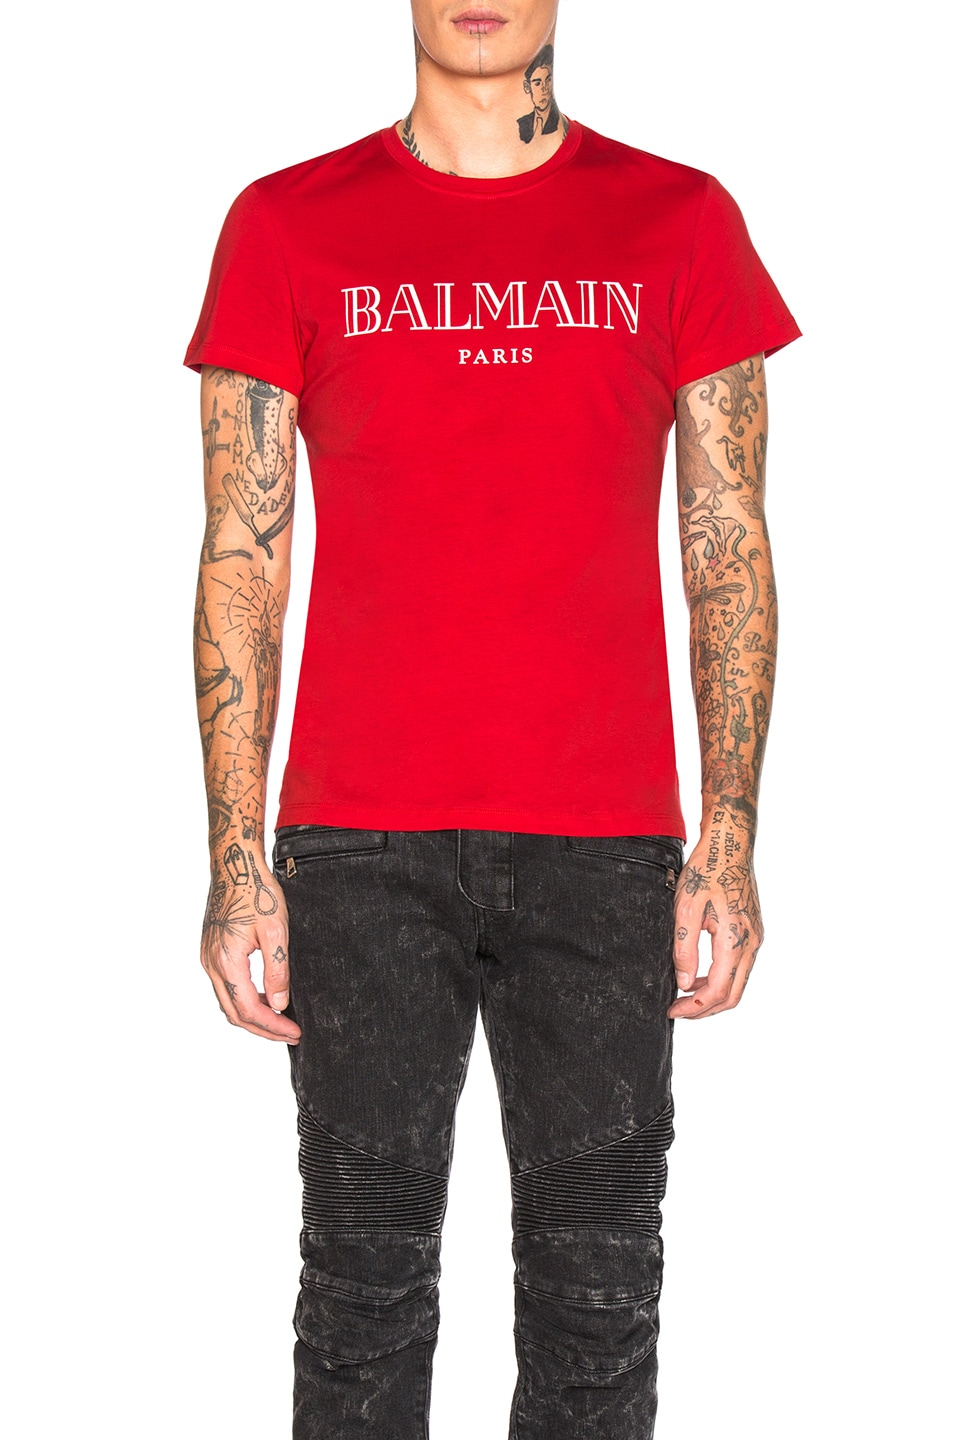 Image 1 of BALMAIN Balmain Paris T-Shirt in Rouge